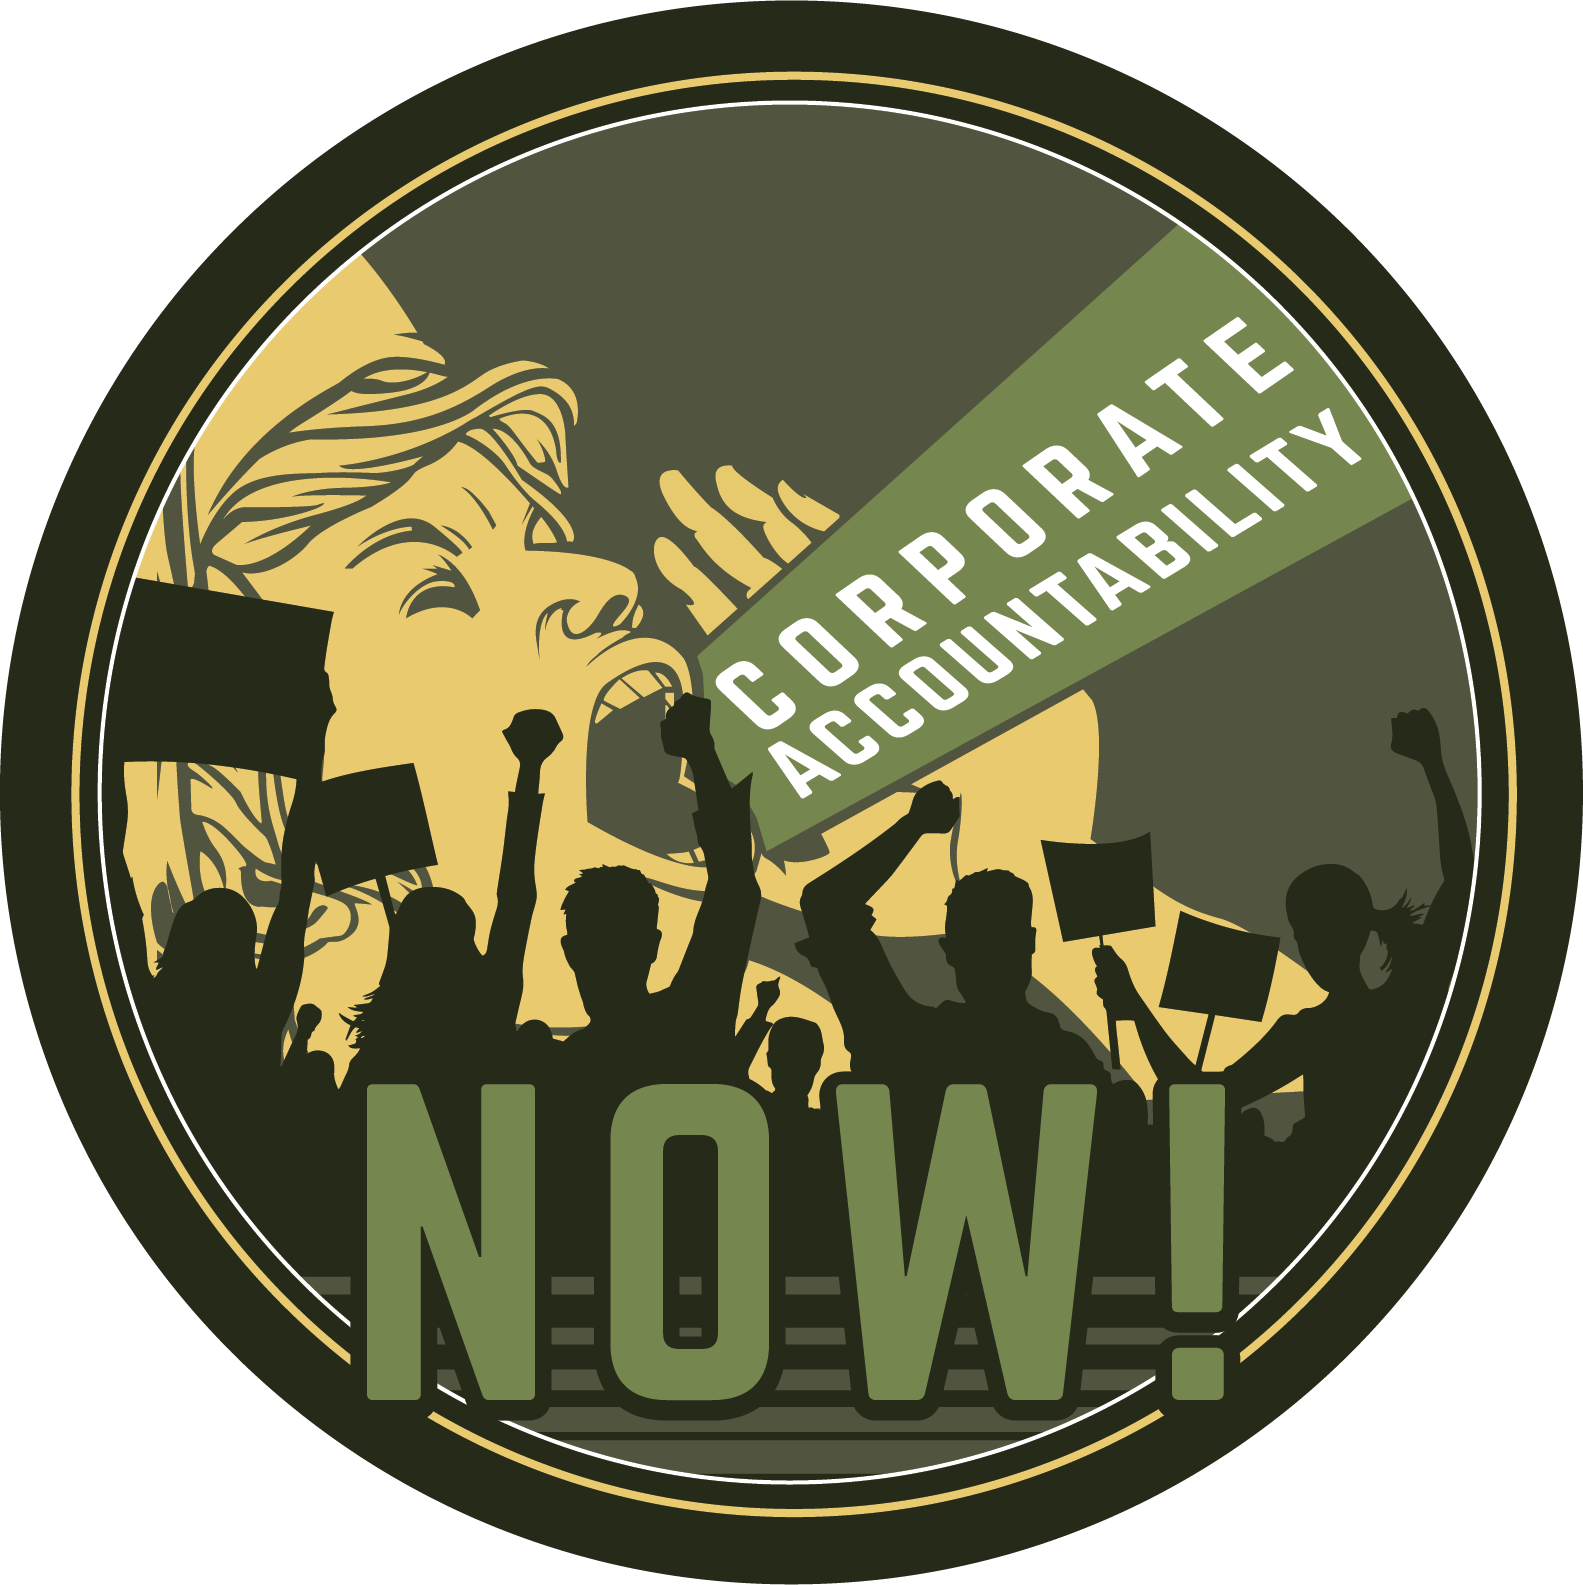 Corporate_Accountability_Now_logo-01.png